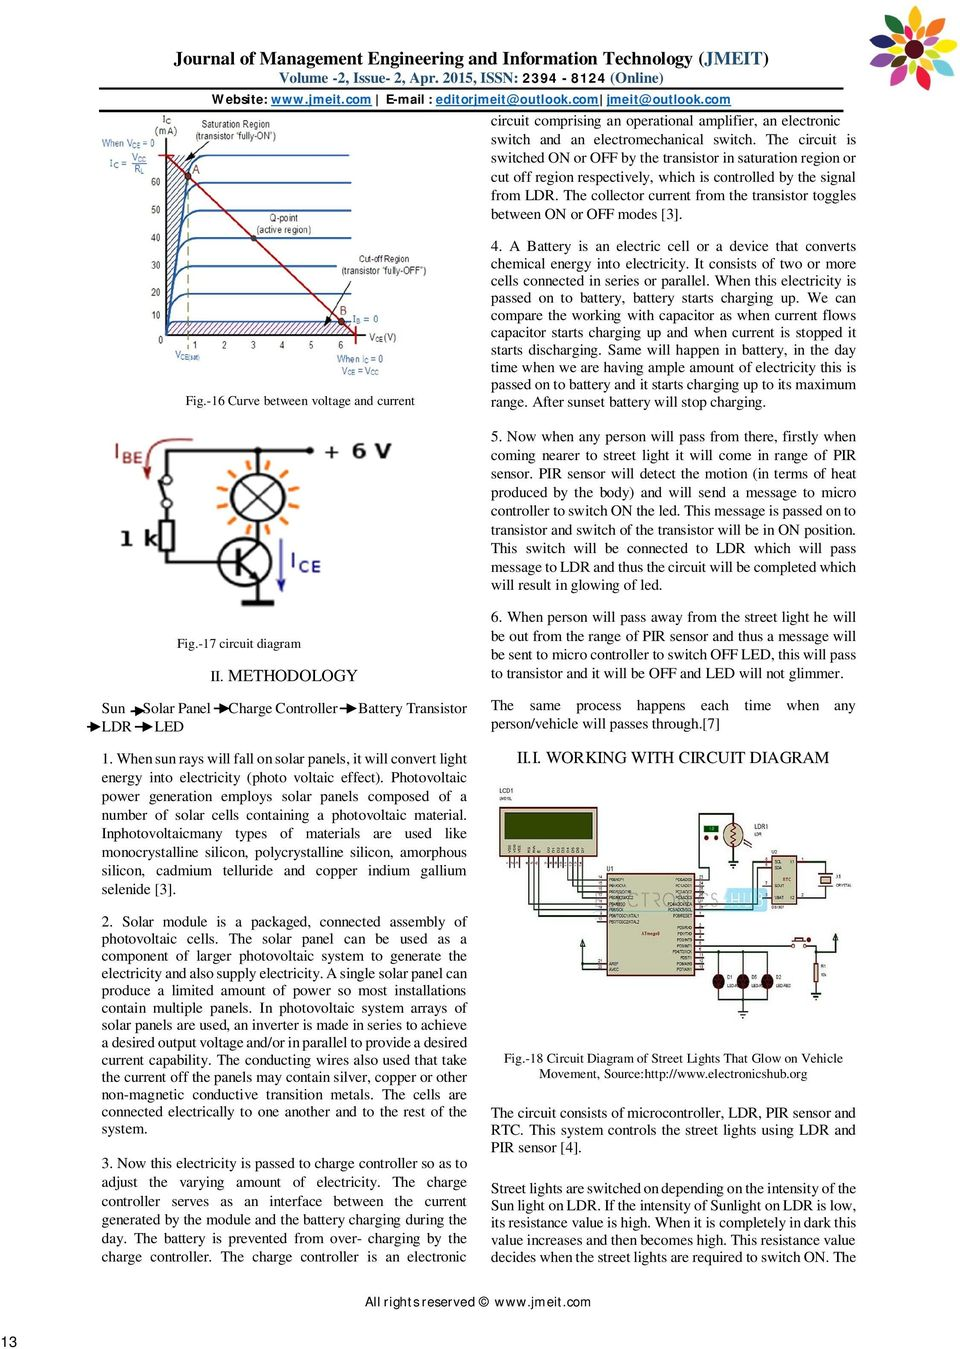 Electronic Street Light Using Solar Power And Led Pdf Two Wiring Diagram At The Collector Current From Transistor Toggles Between On Or Off Modes 3